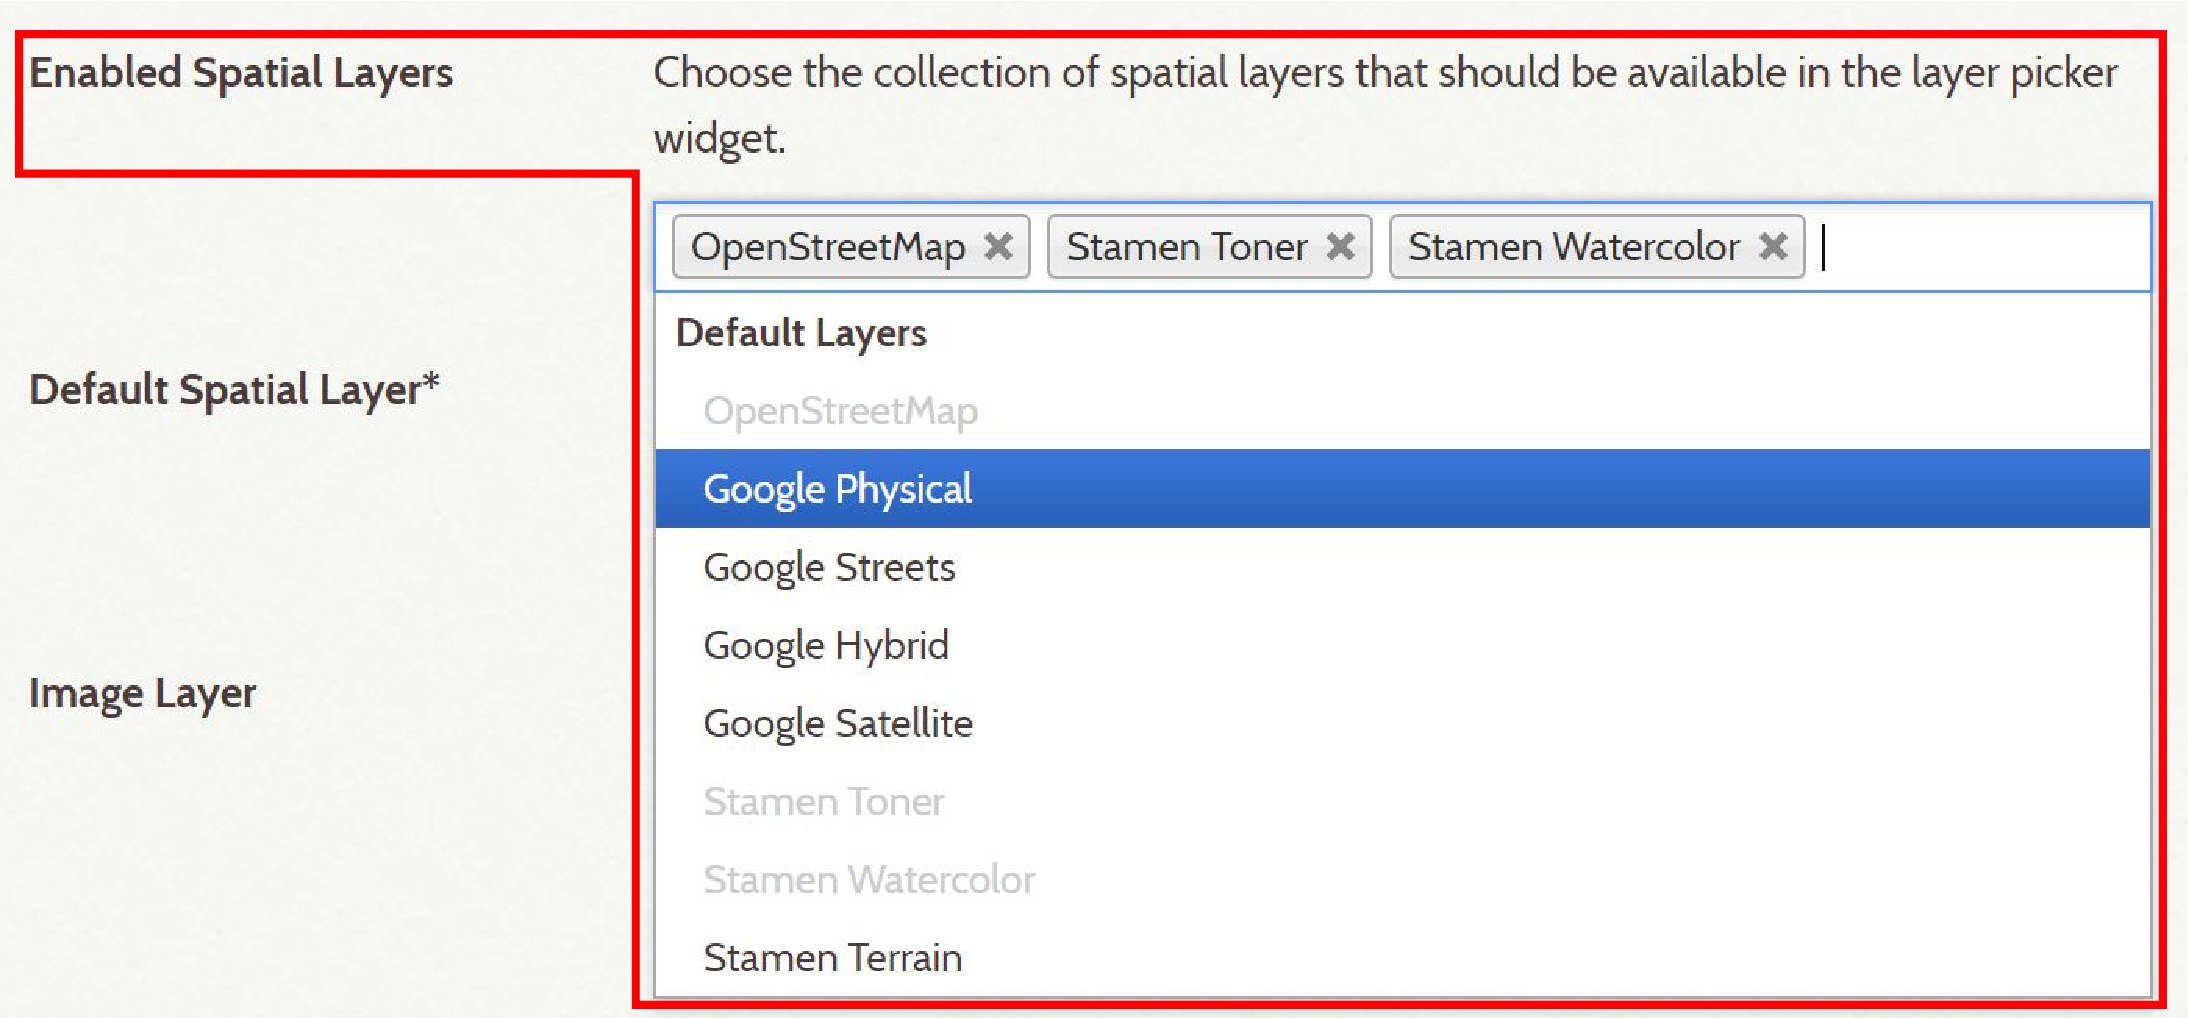 Screenshot of selecting enabled spatial layers